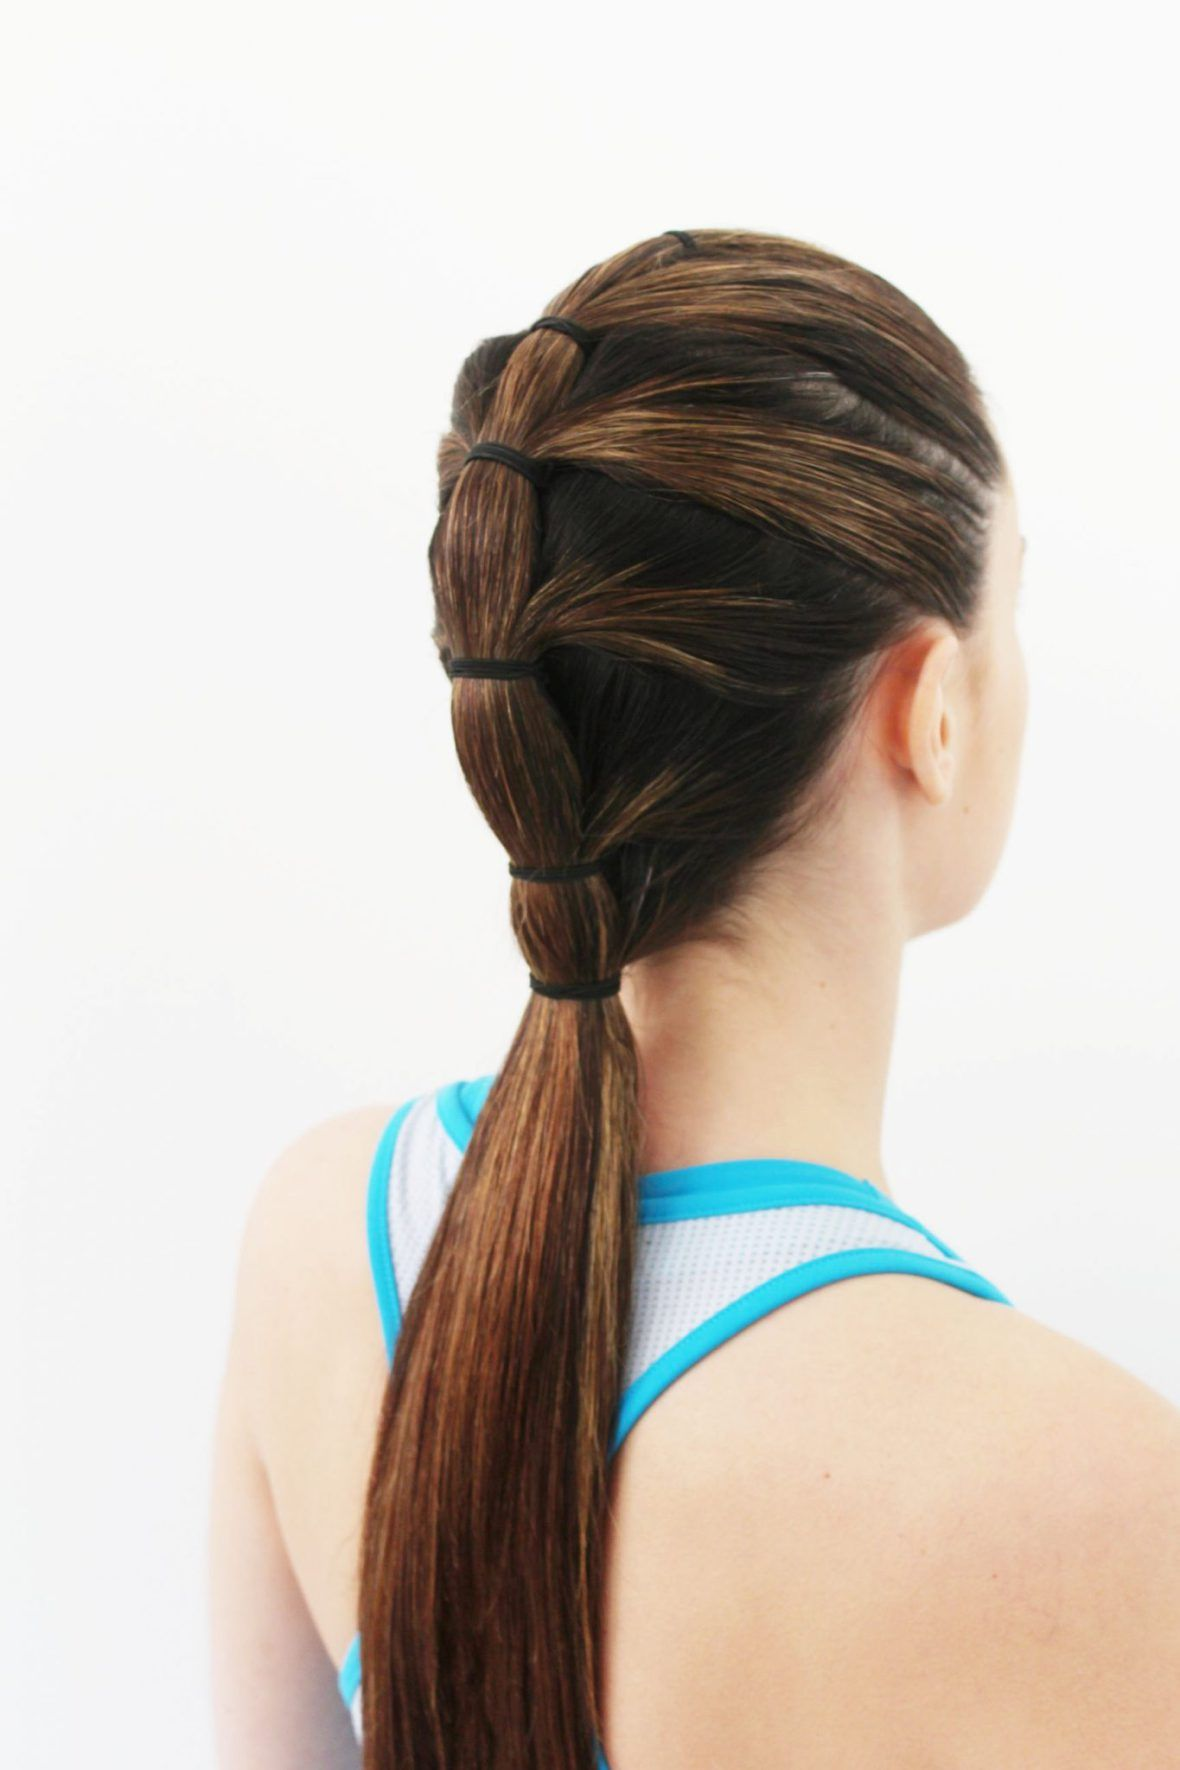 Gym Hair Tutorial: The Tiered Ponytail | Gym hairstyles ...